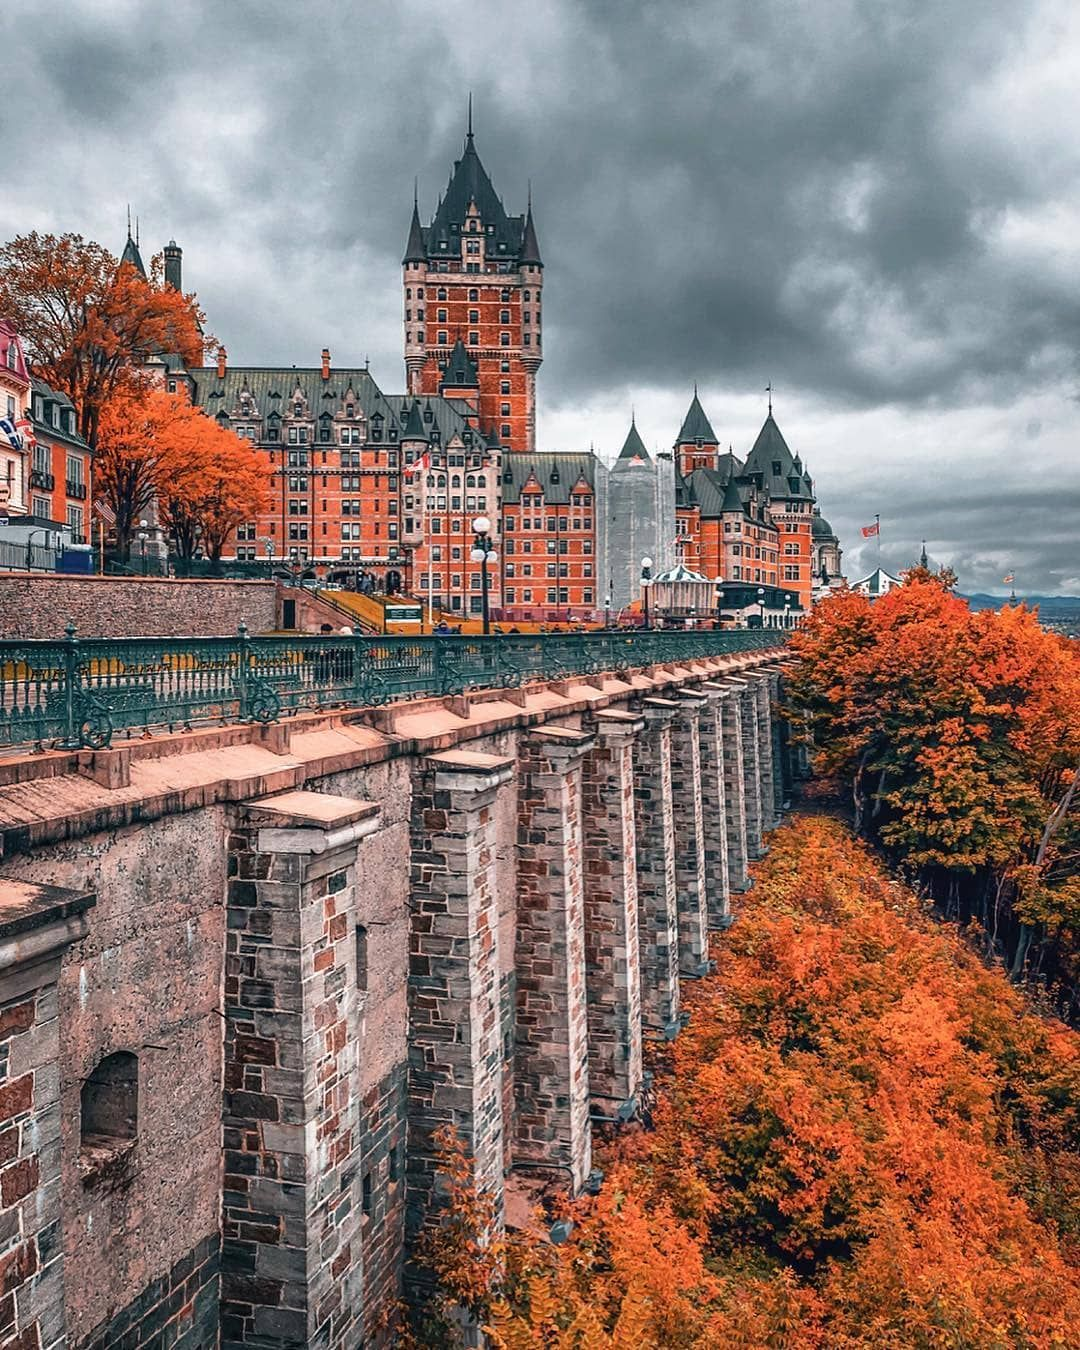 Quebec City S Chateau Frontenac Is The Most Photographed Hotel In The World Picture By Photonicstories Quebec City Frontenac Quebec